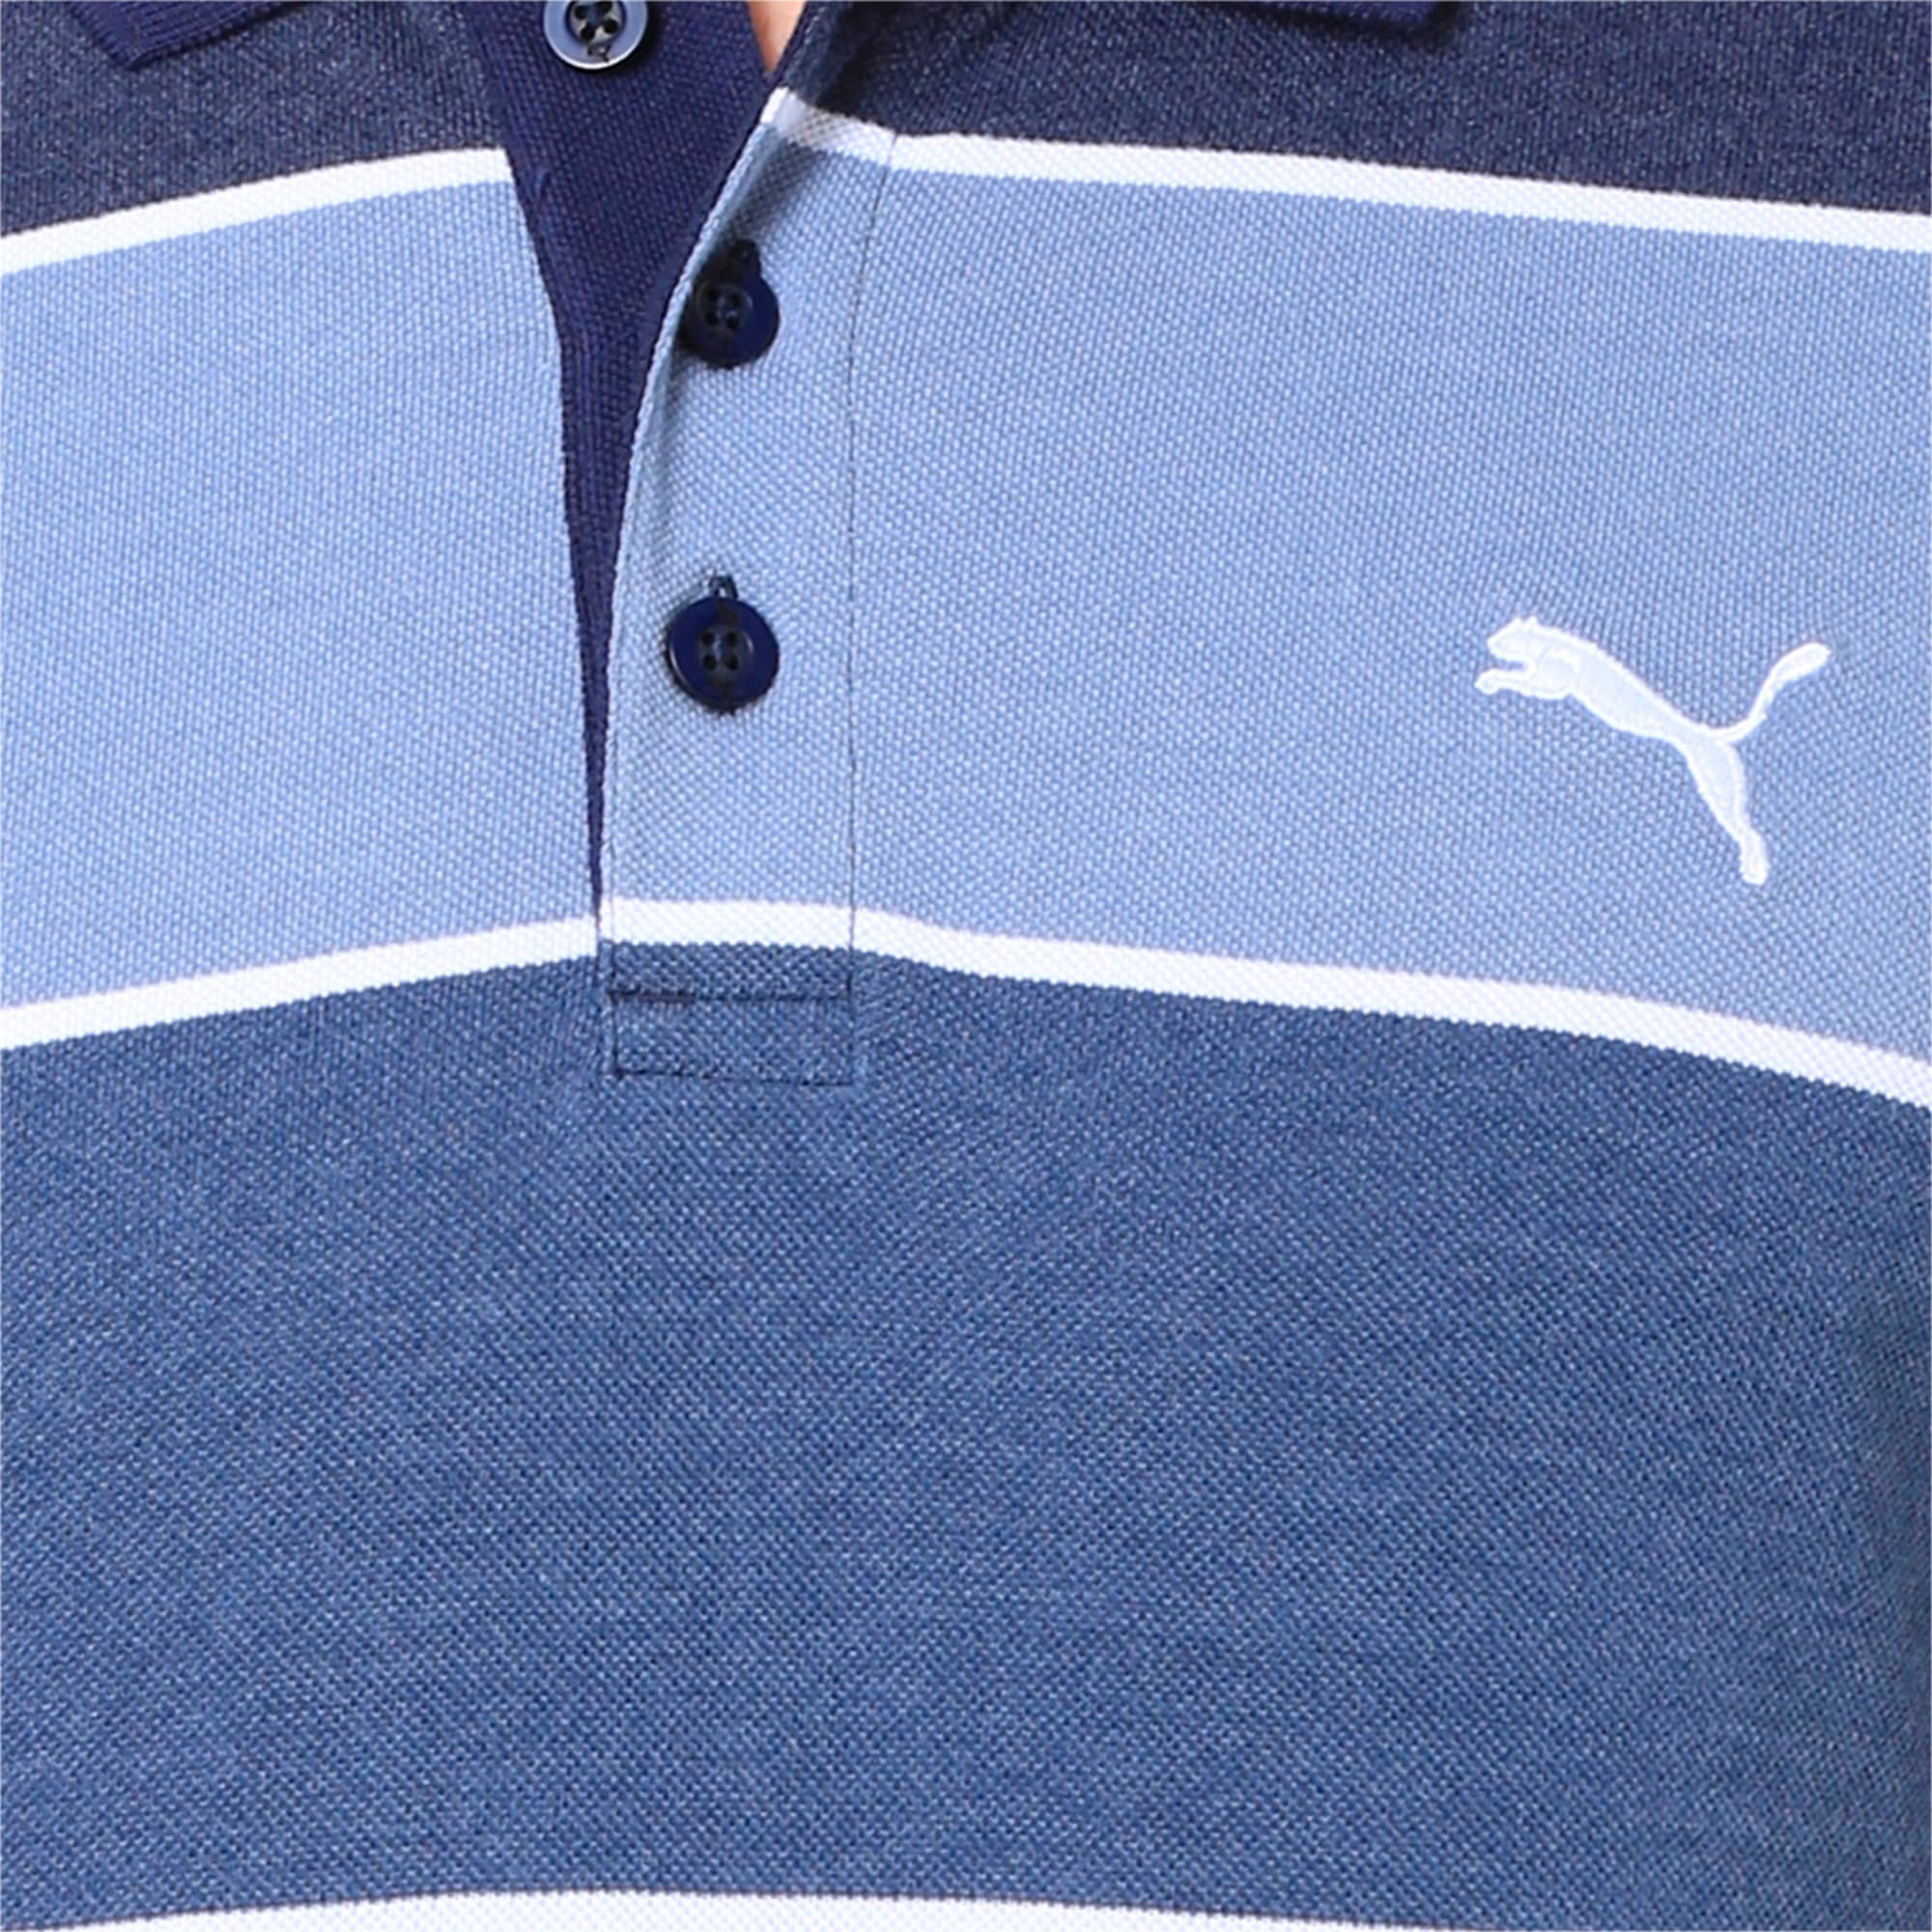 Thumbnail 6 of COLOR BLOCKED POLO M, Peacoat Heather, medium-IND